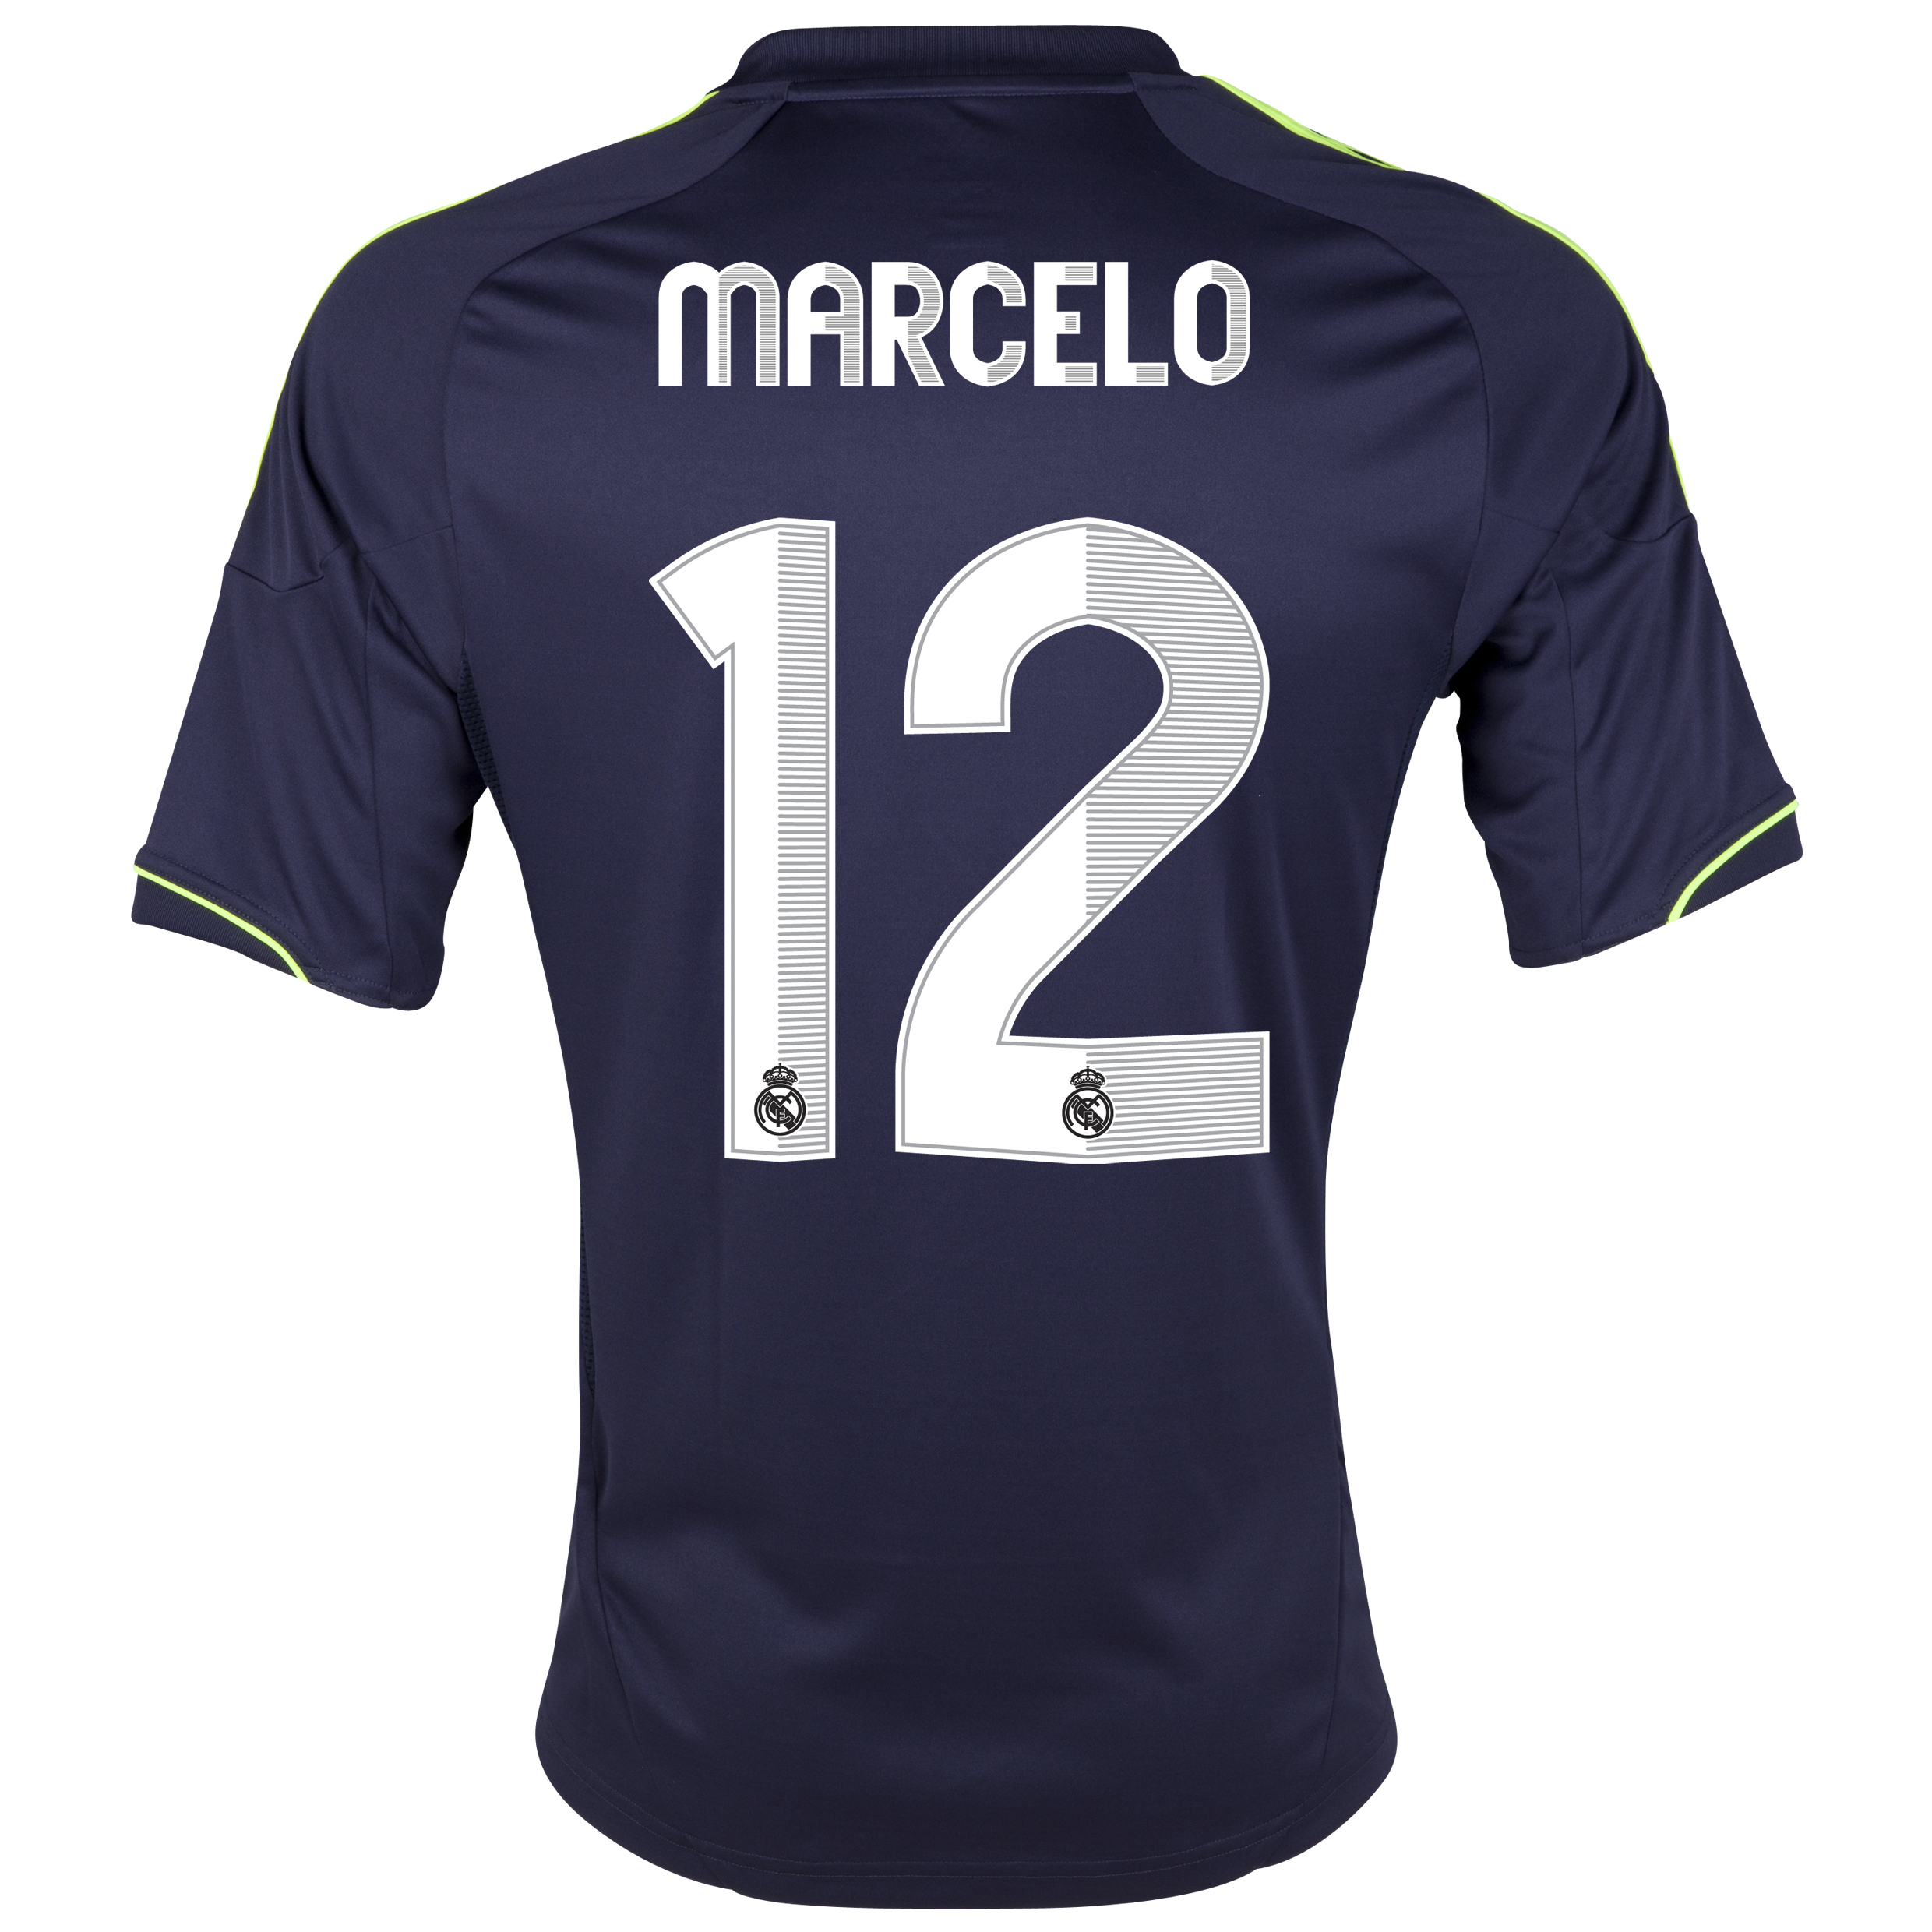 Real Madrid Away Shirt 2012/13 with Marcelo 12 printing